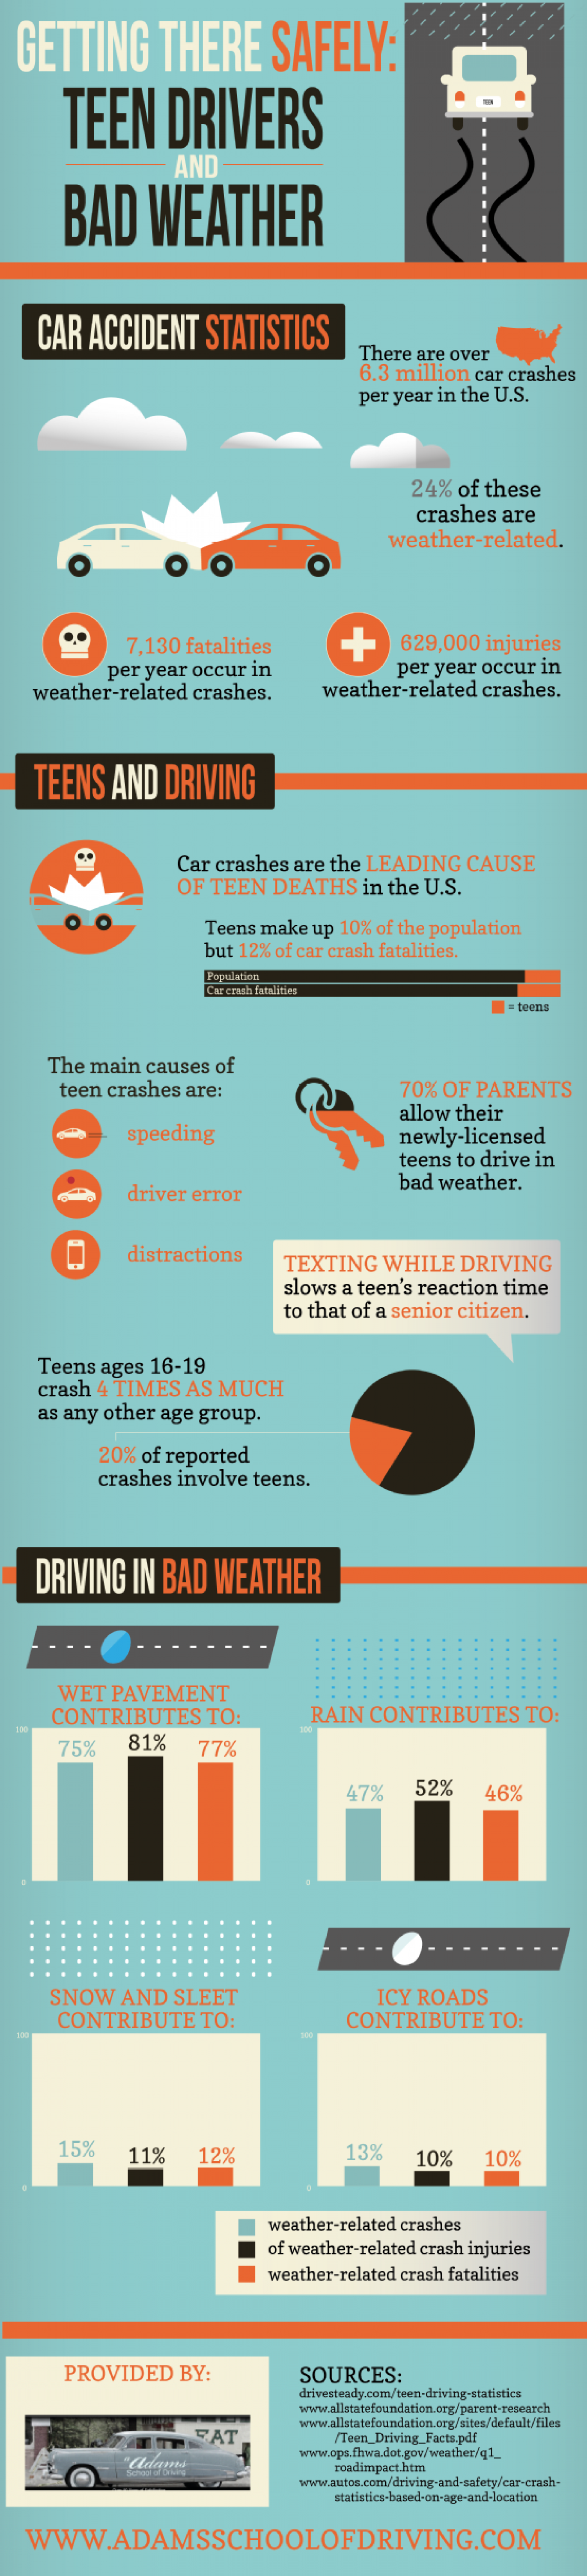 Getting There Safely: Teen Drivers and Bad Weather Infographic